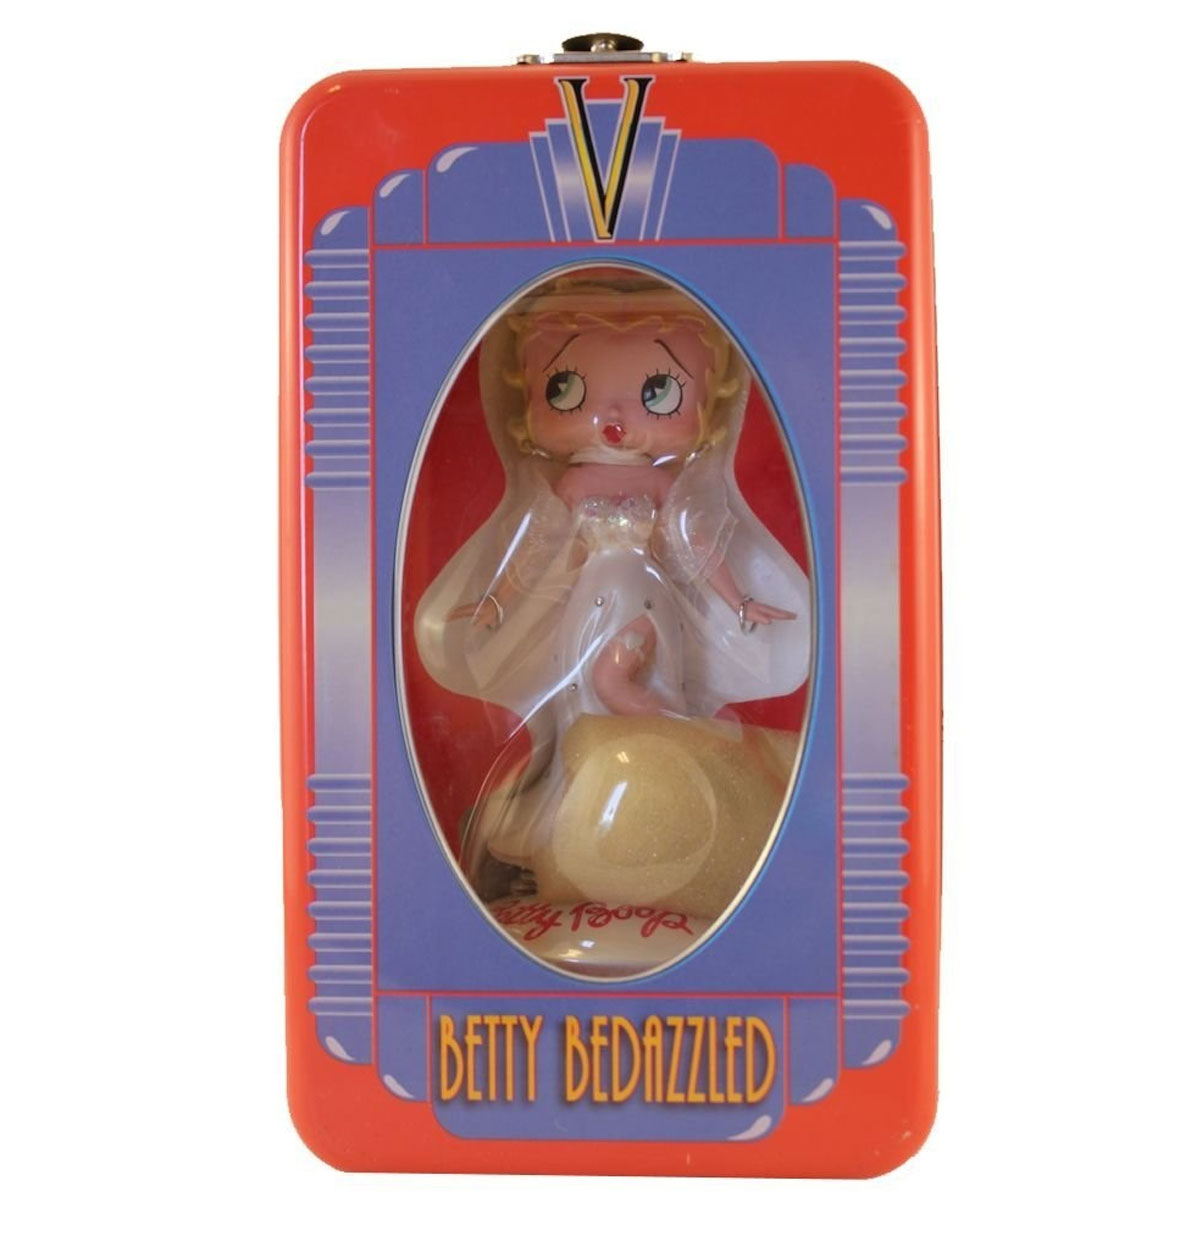 Betty Boop Bedazzled Bobble Head (2005)